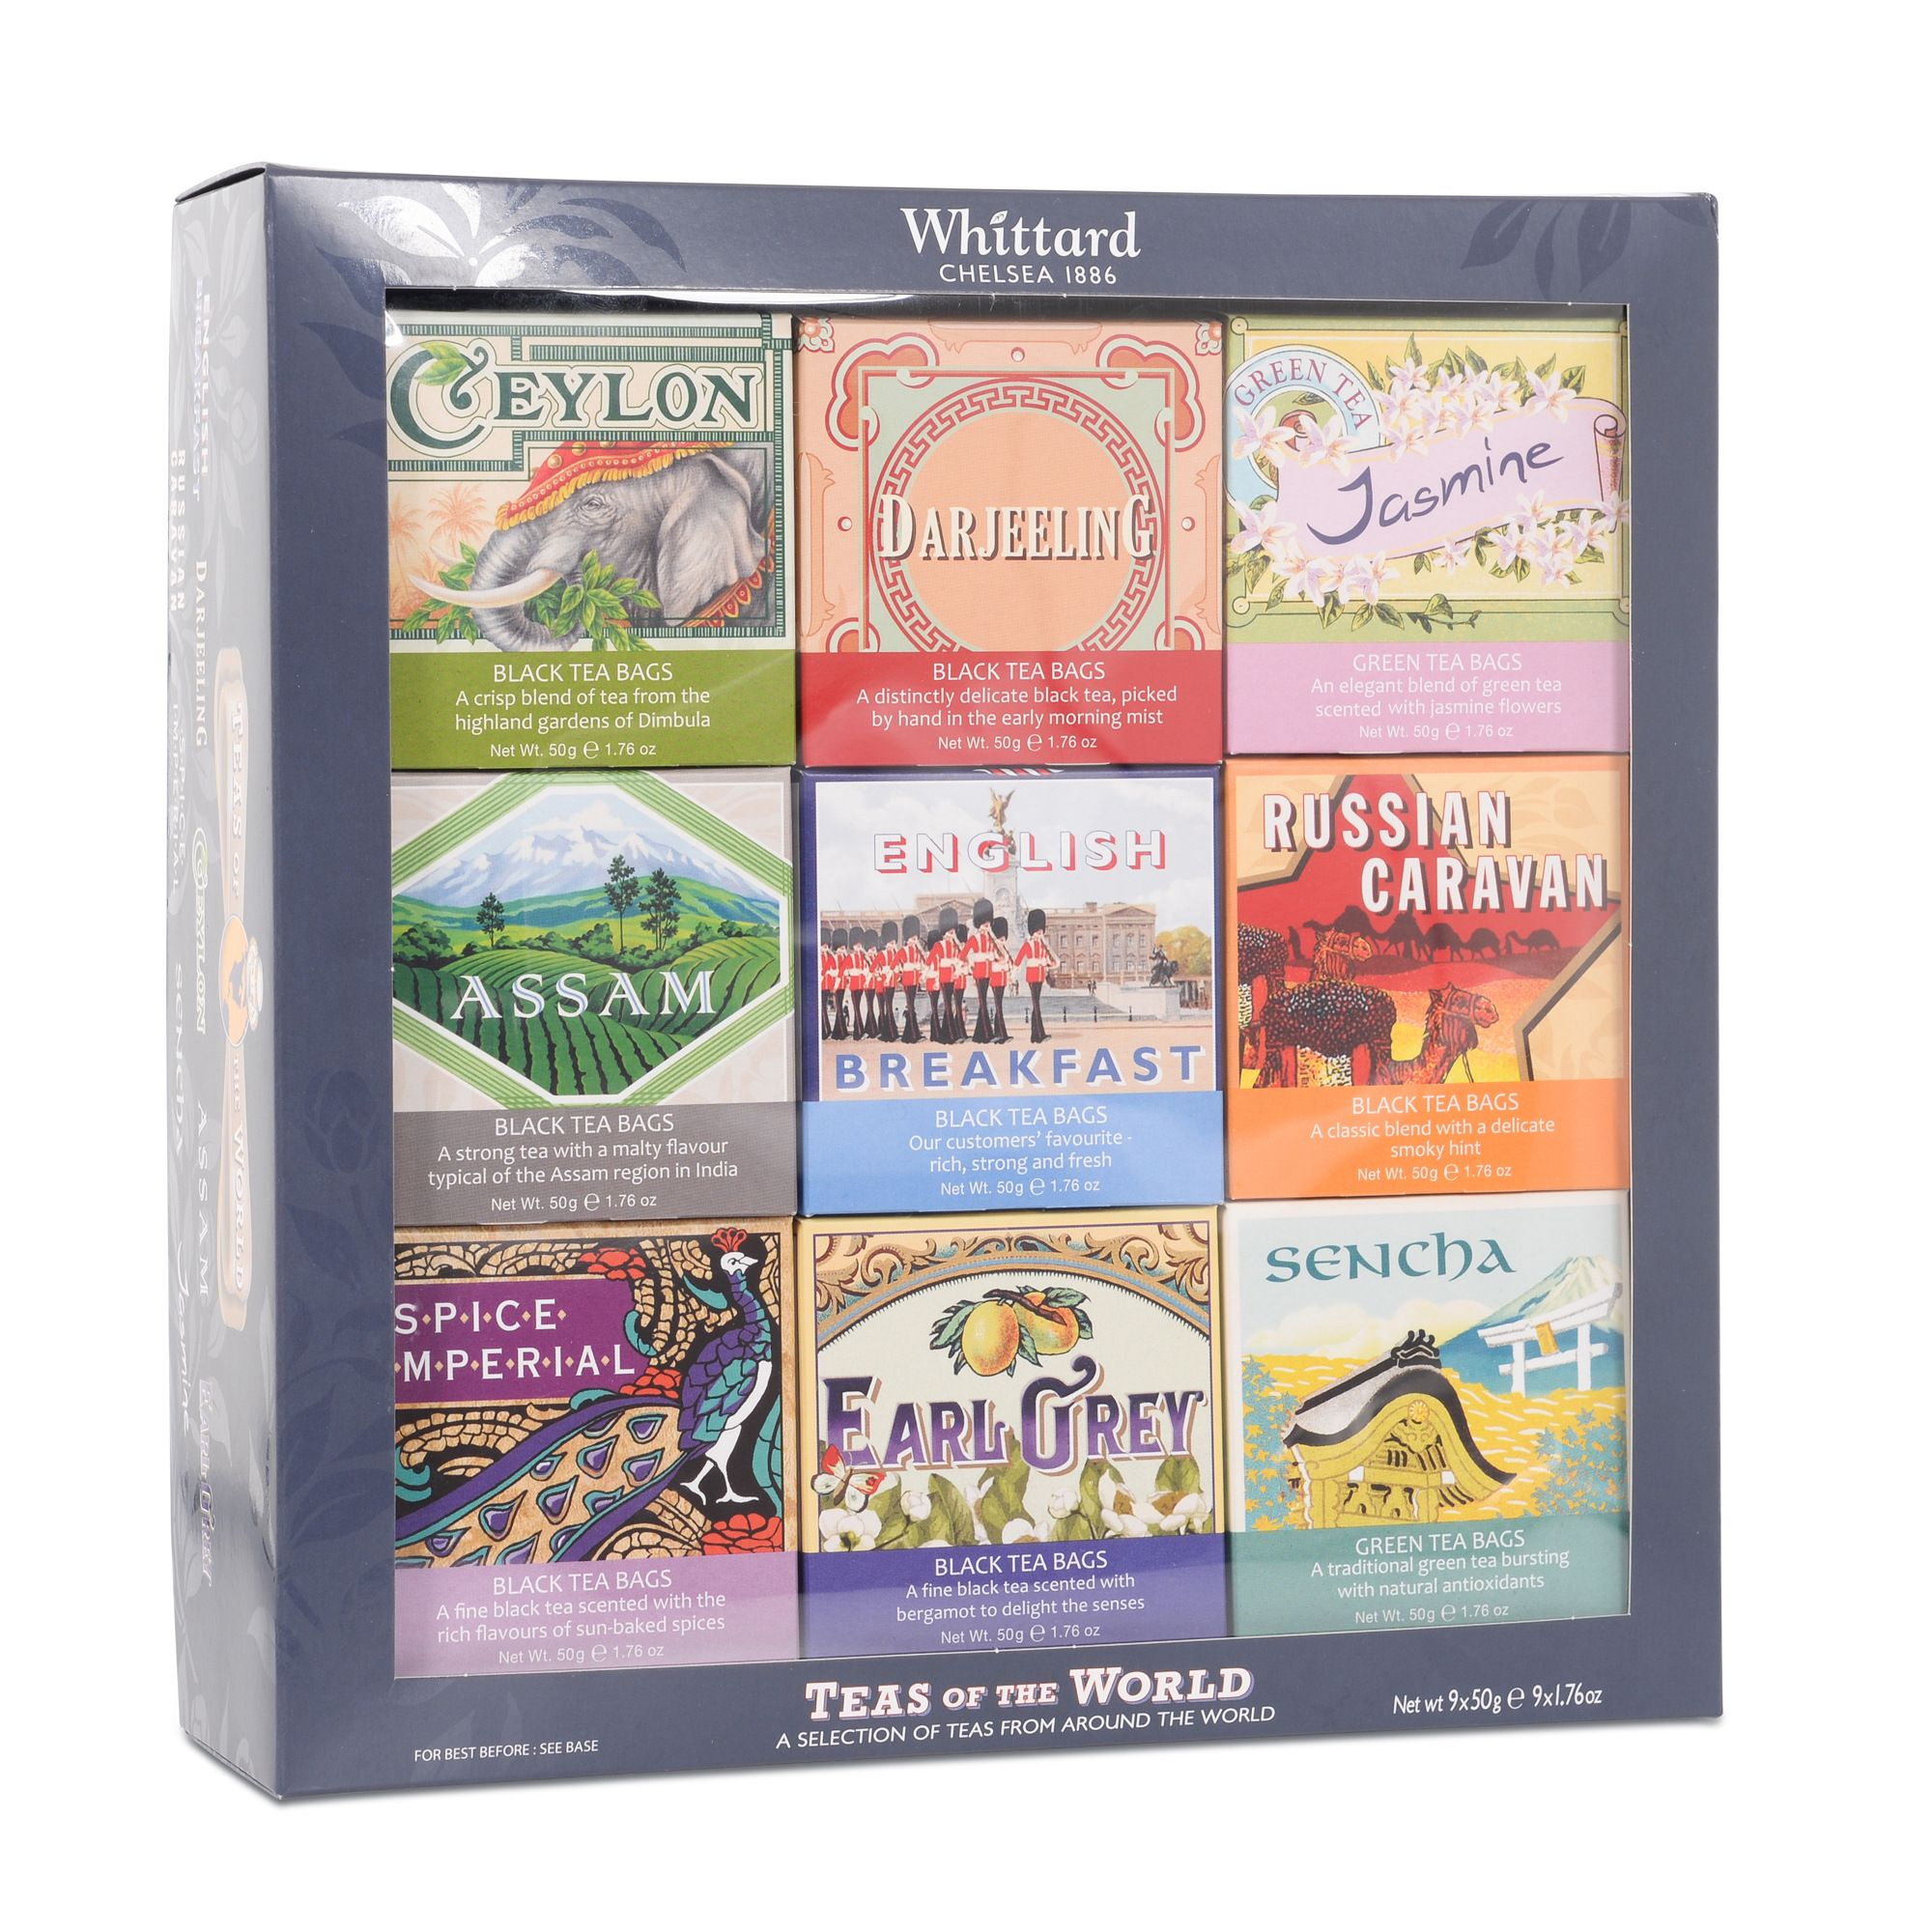 Teas of the World Whittard of Chelsea (With images